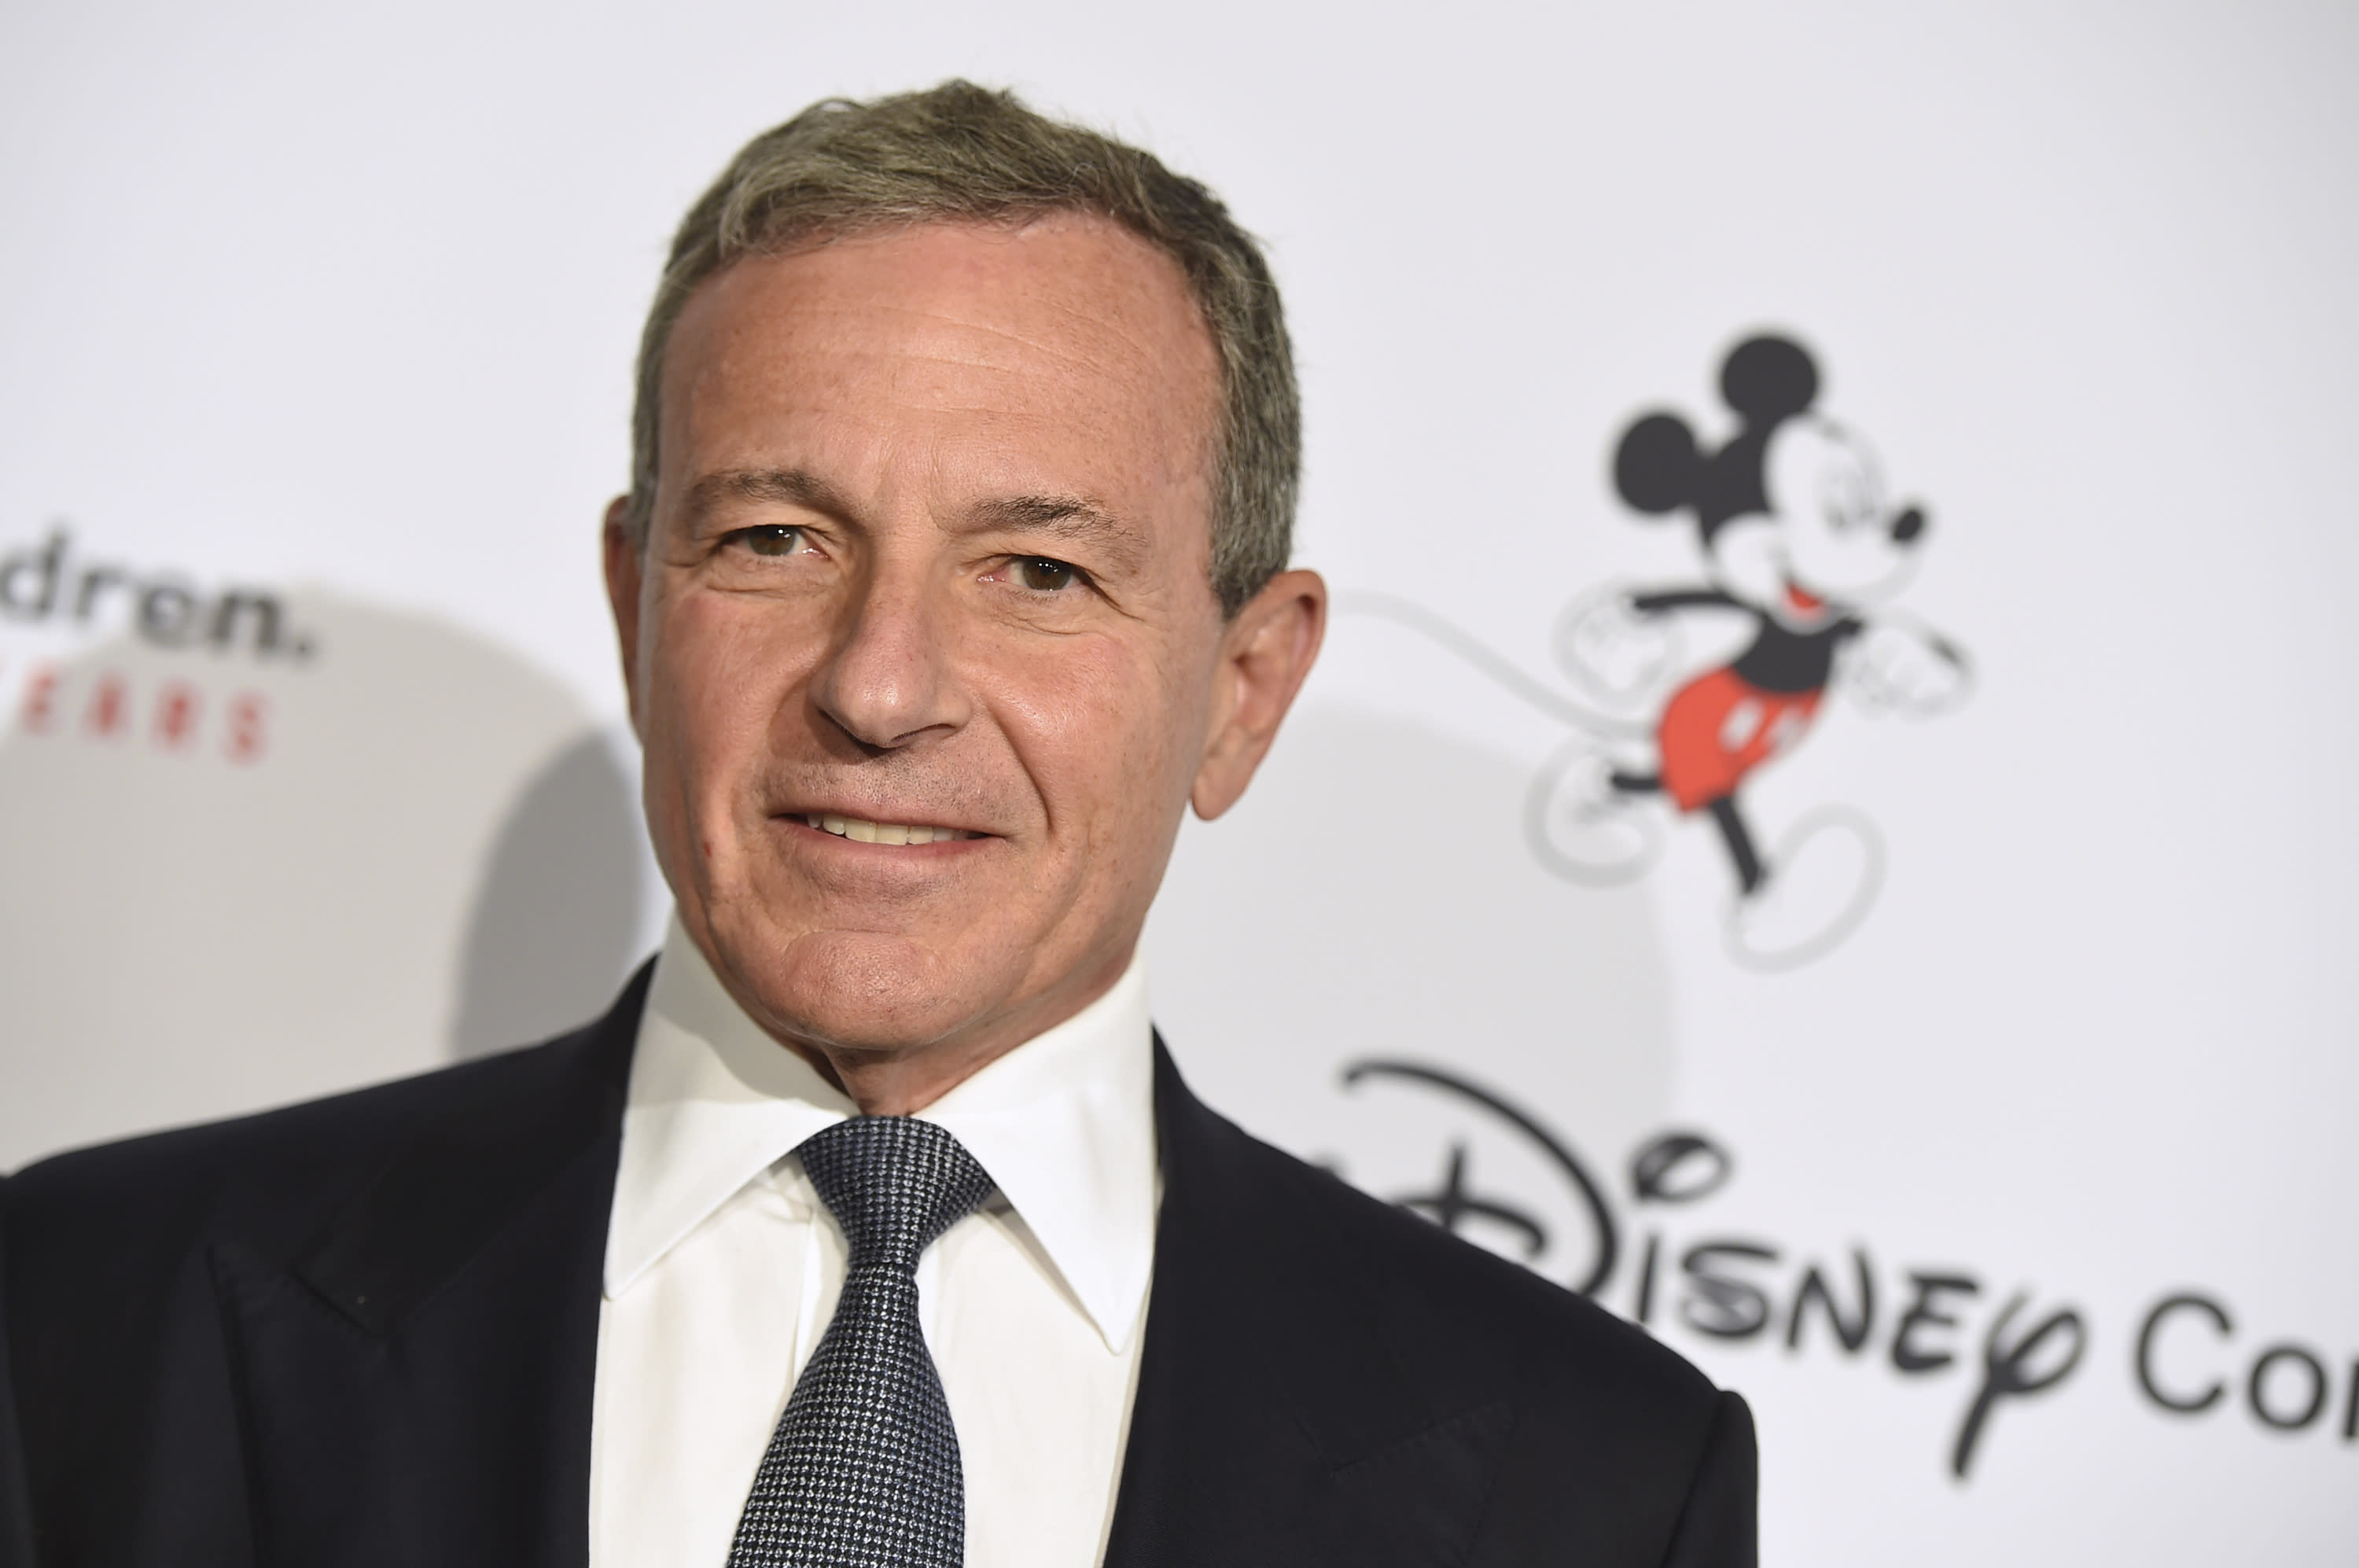 Disney boss Bob Iger plots meeting with Martin Scorsese after his 'nasty' Marvel comments